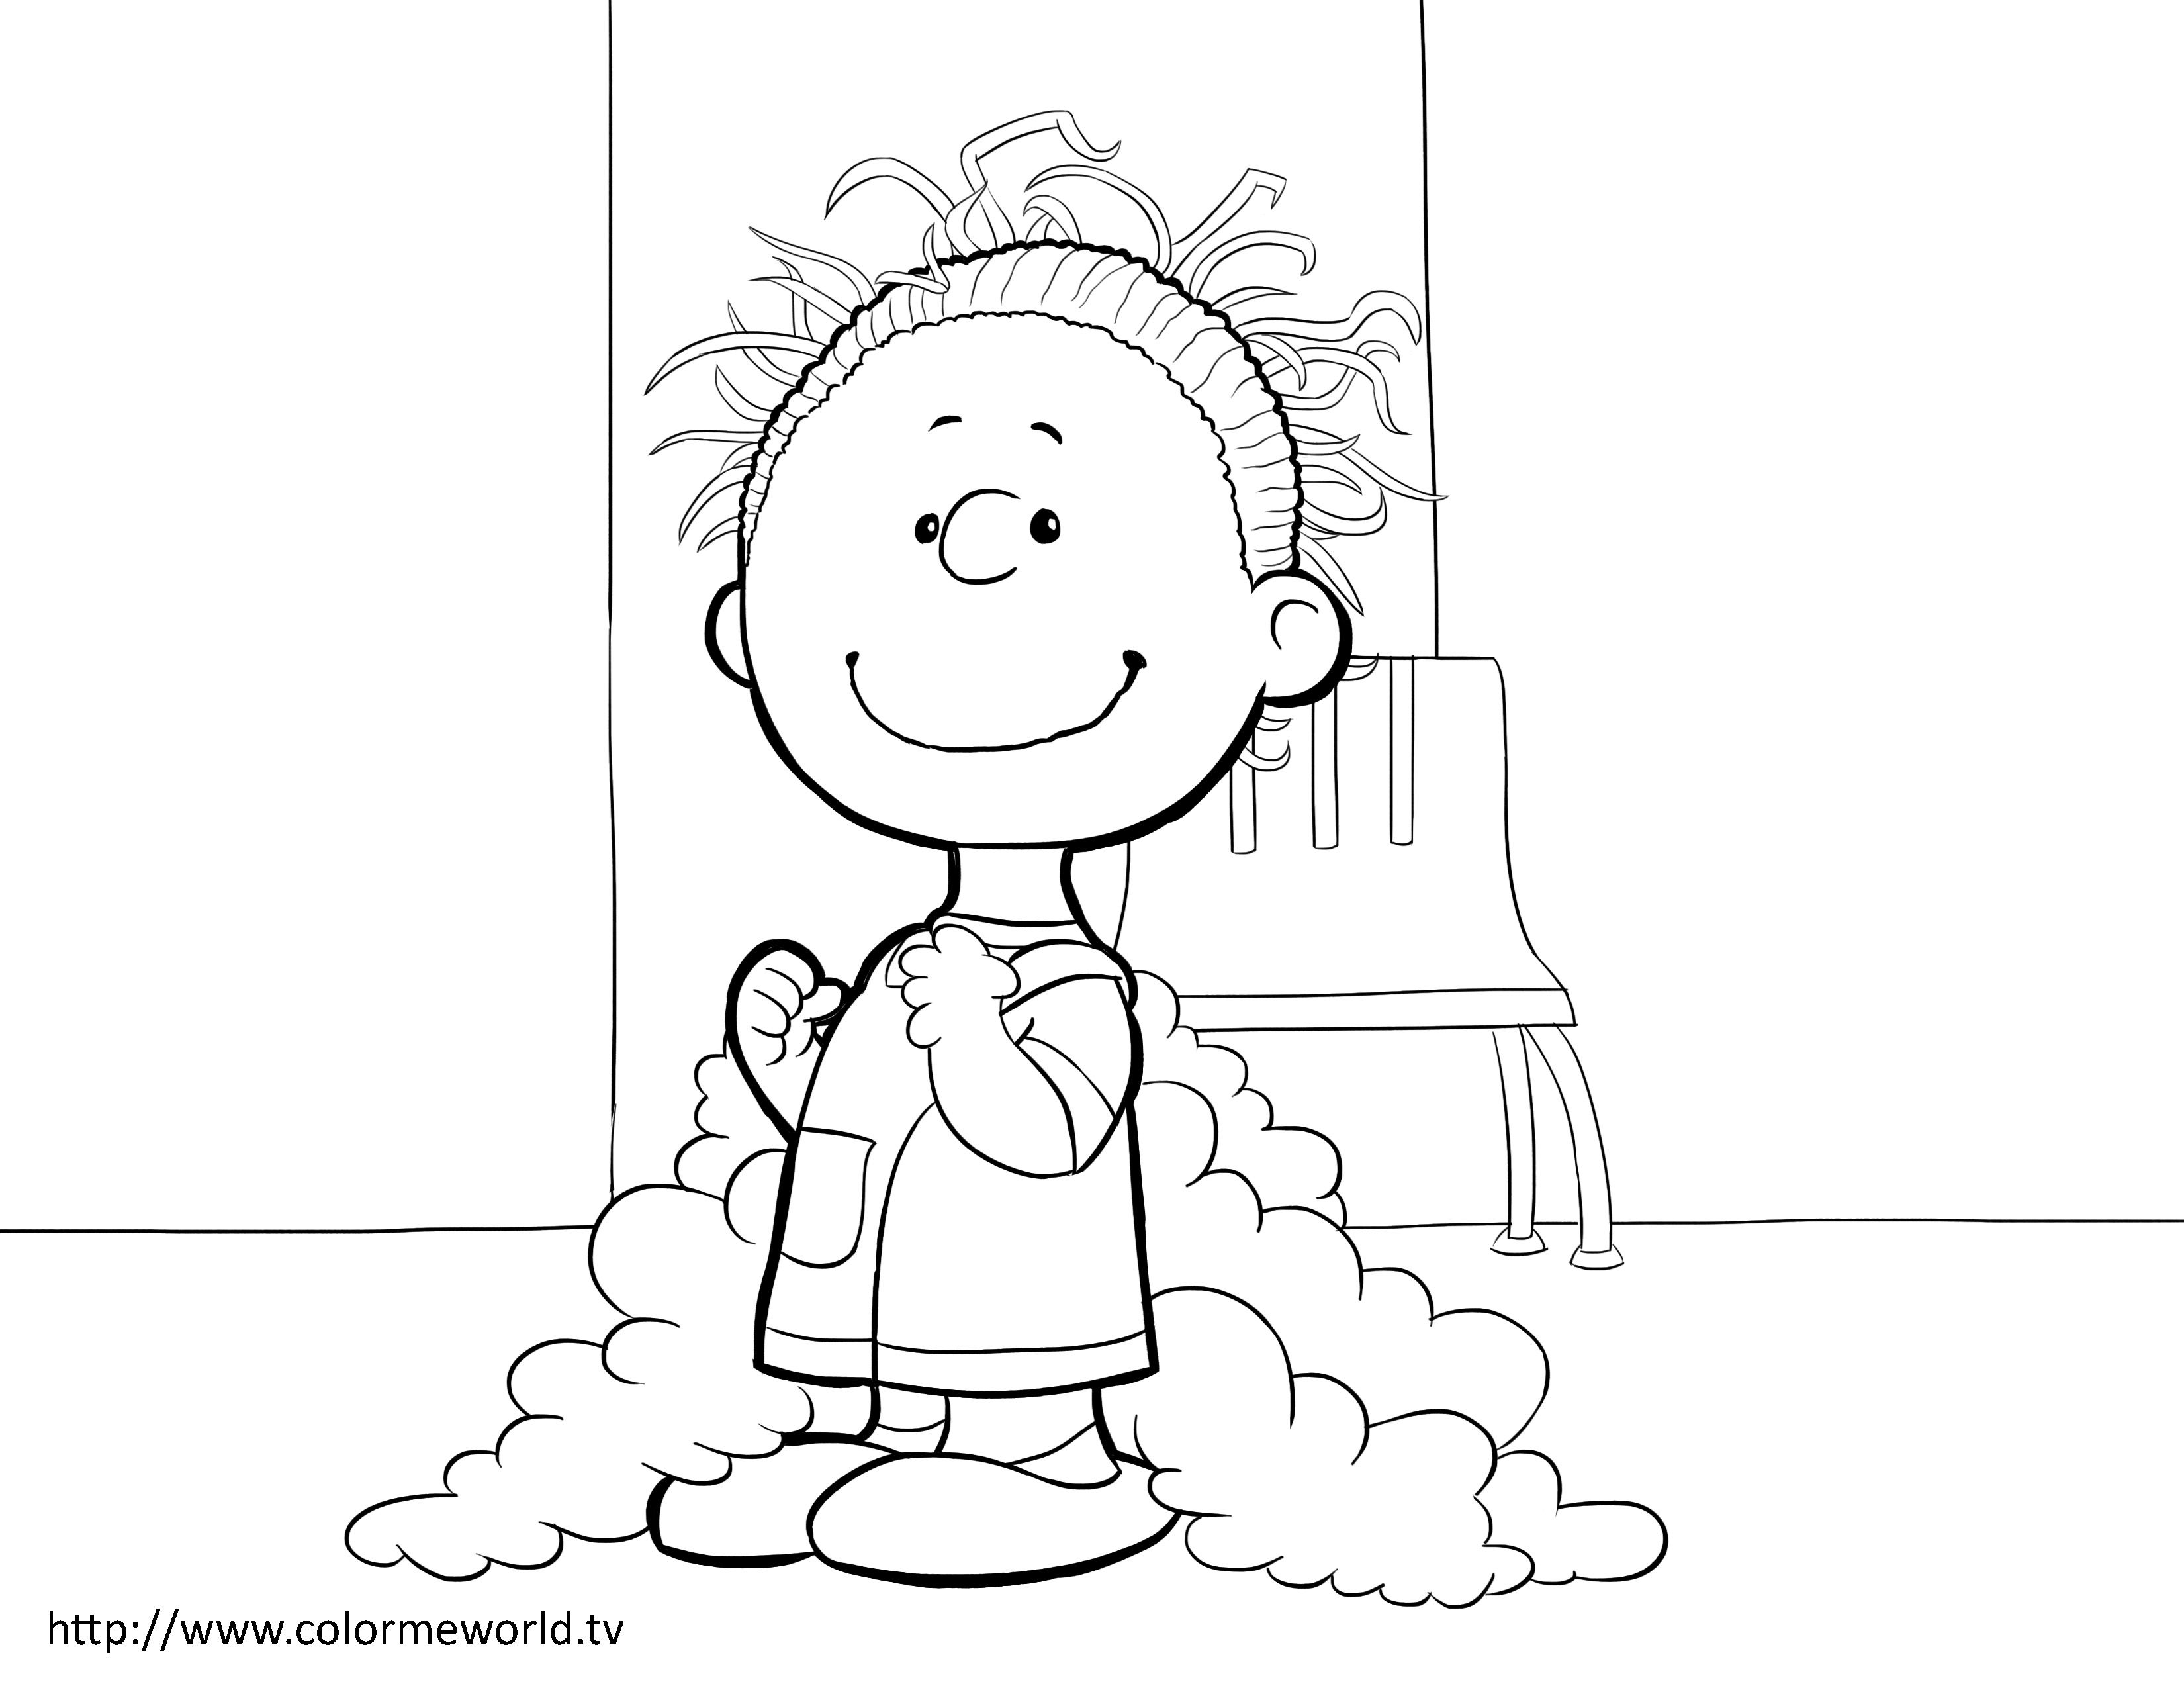 Pig Pen Pdf Printable Coloring Page Peanuts Coloring Pages Snoopy Pictures Printable Coloring Pages